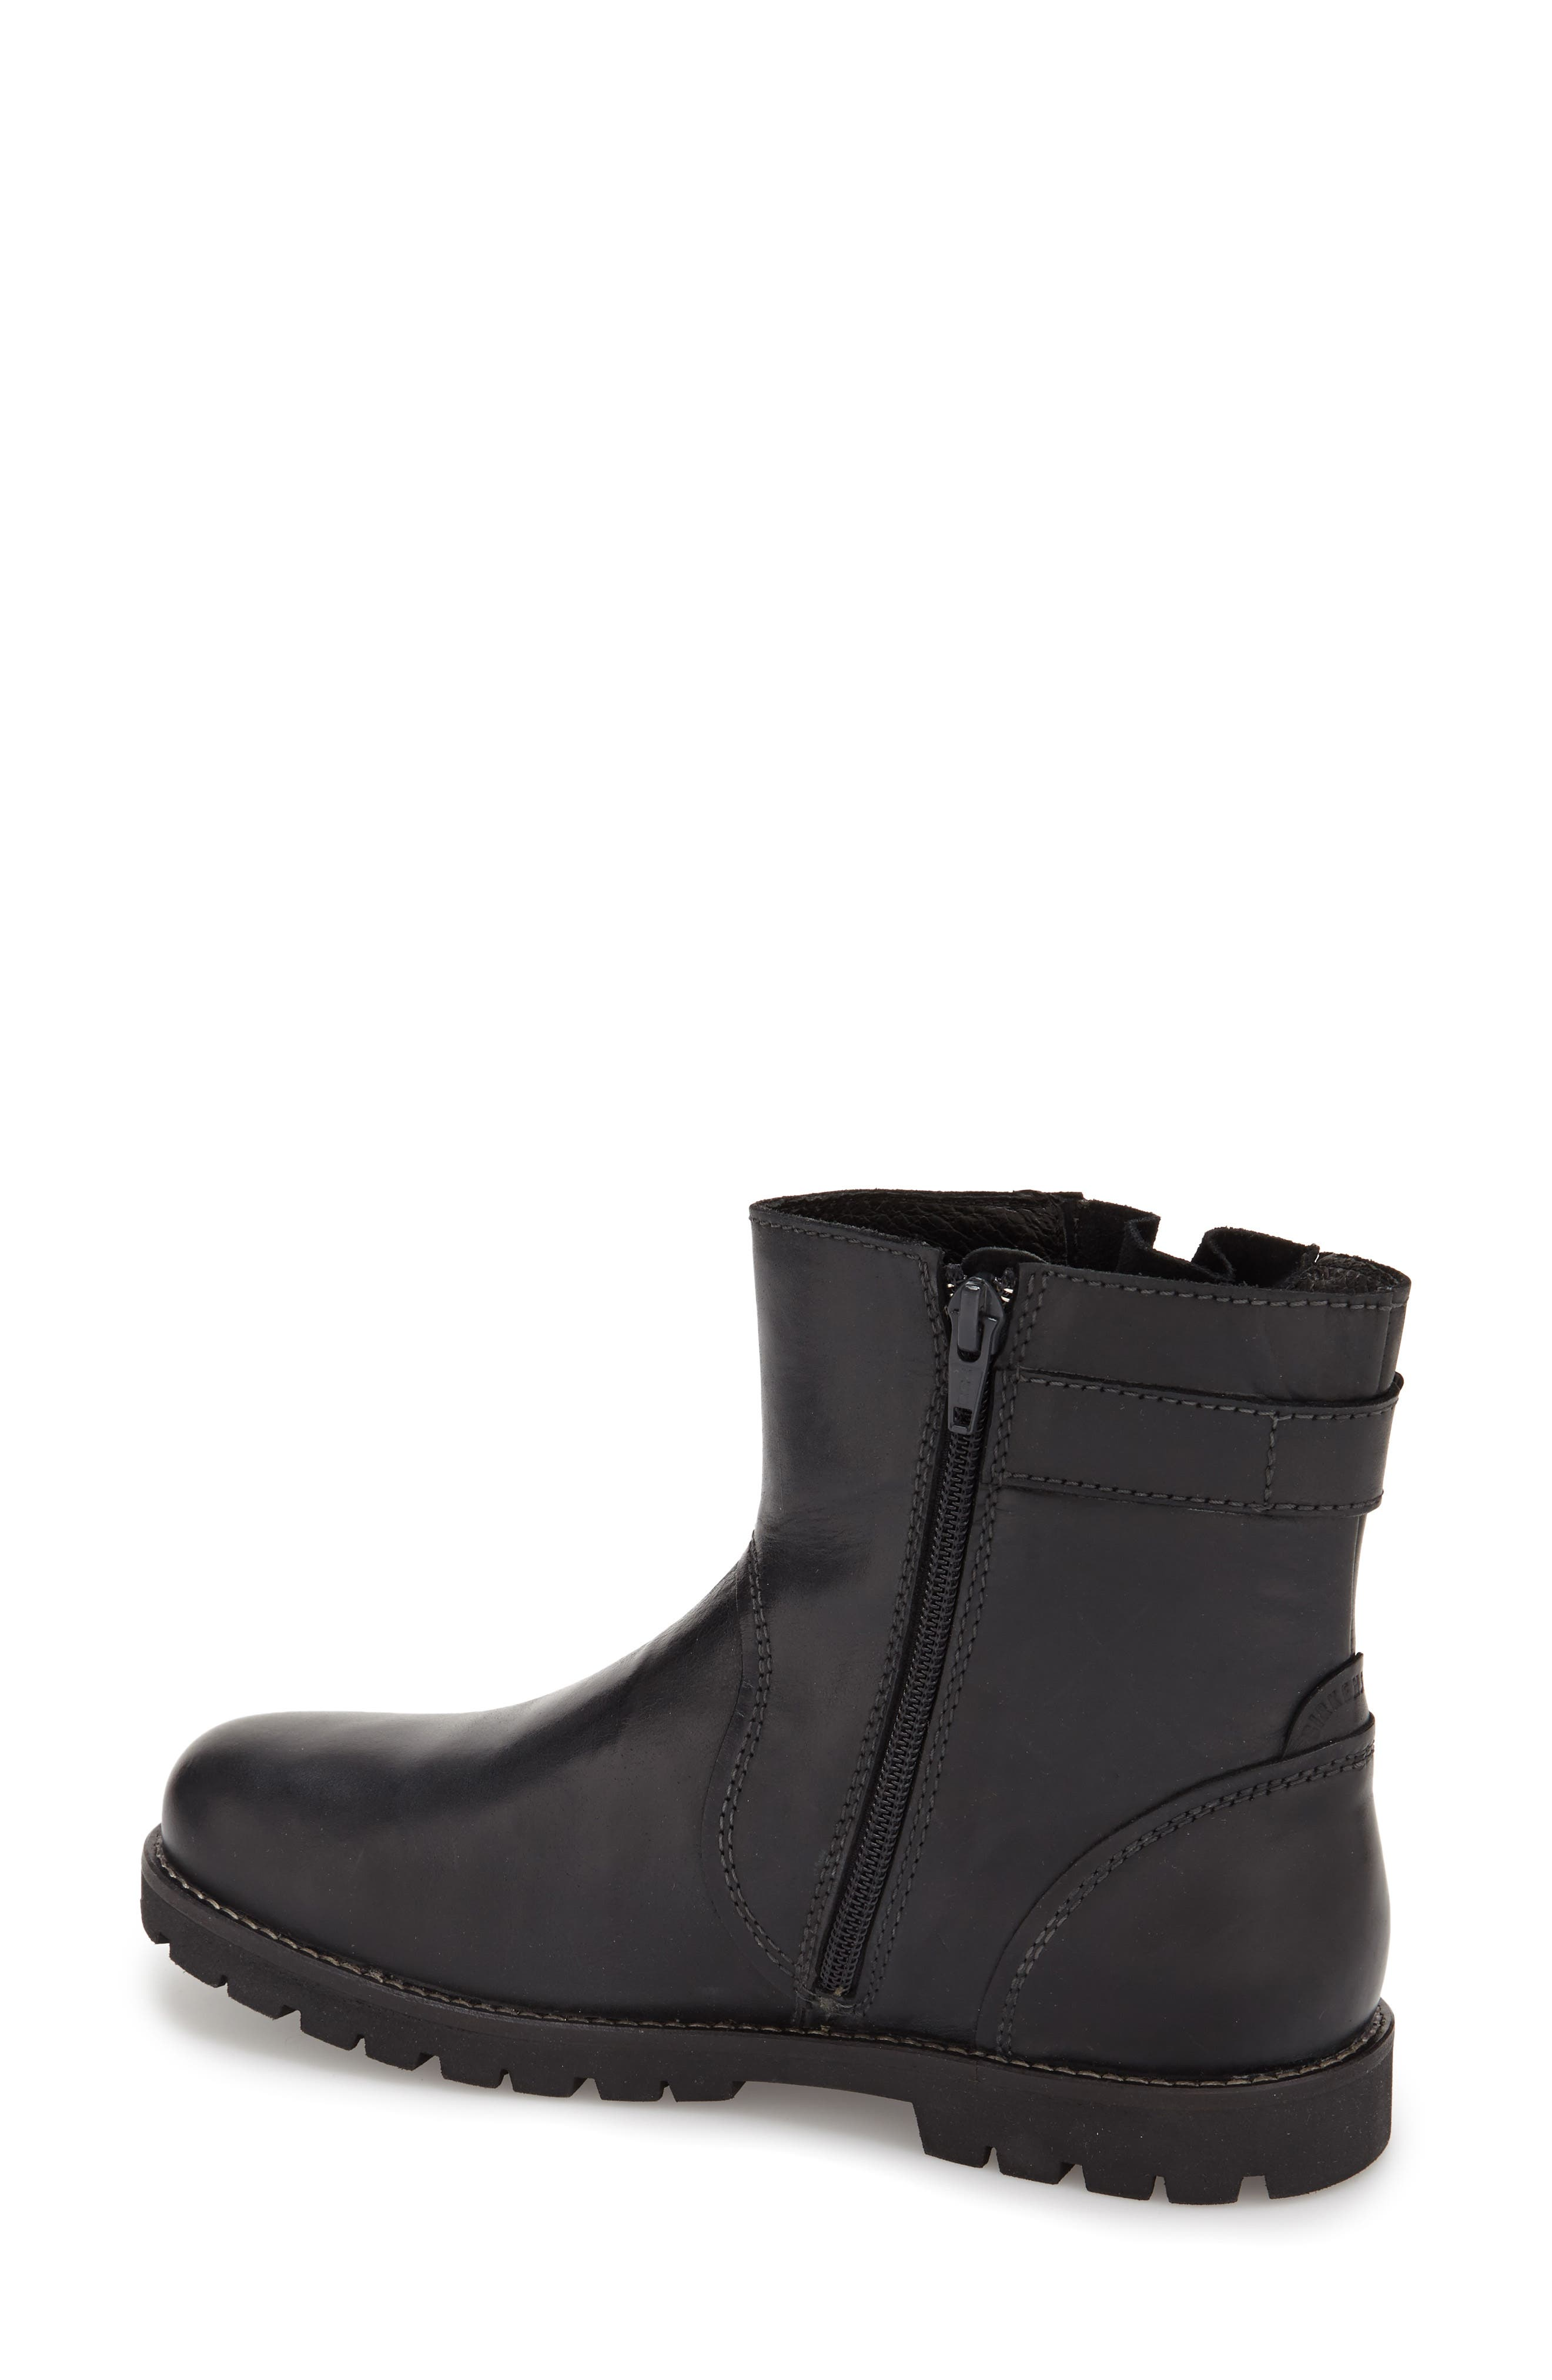 Alternate Image 2  - Birkenstock 'Stowe' Boot (Women)